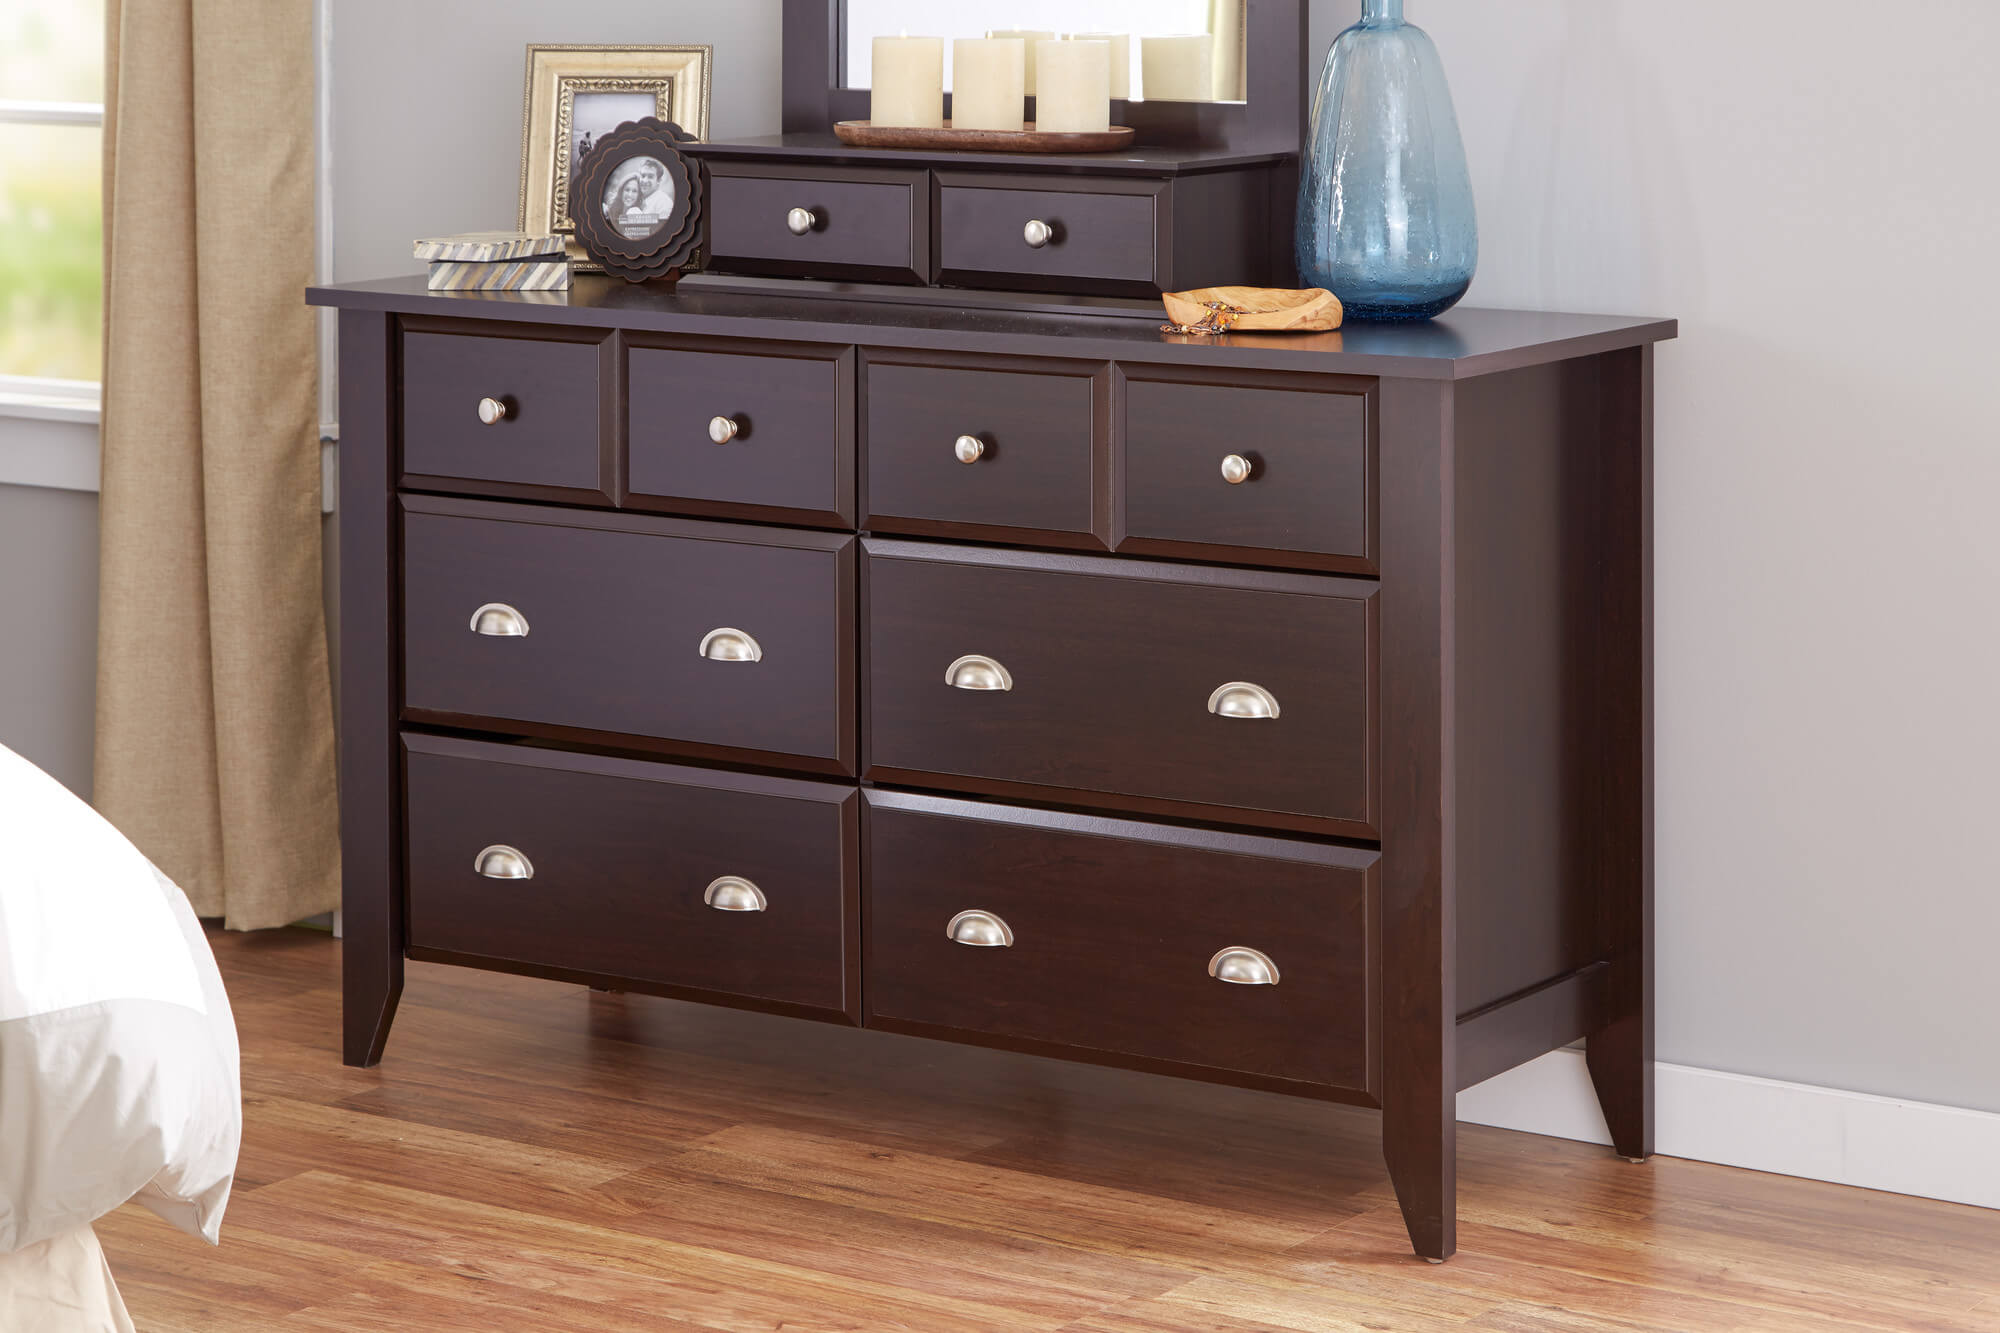 21 Types of Dressers  Chest of Drawers for Your Bedroom Great Ideas